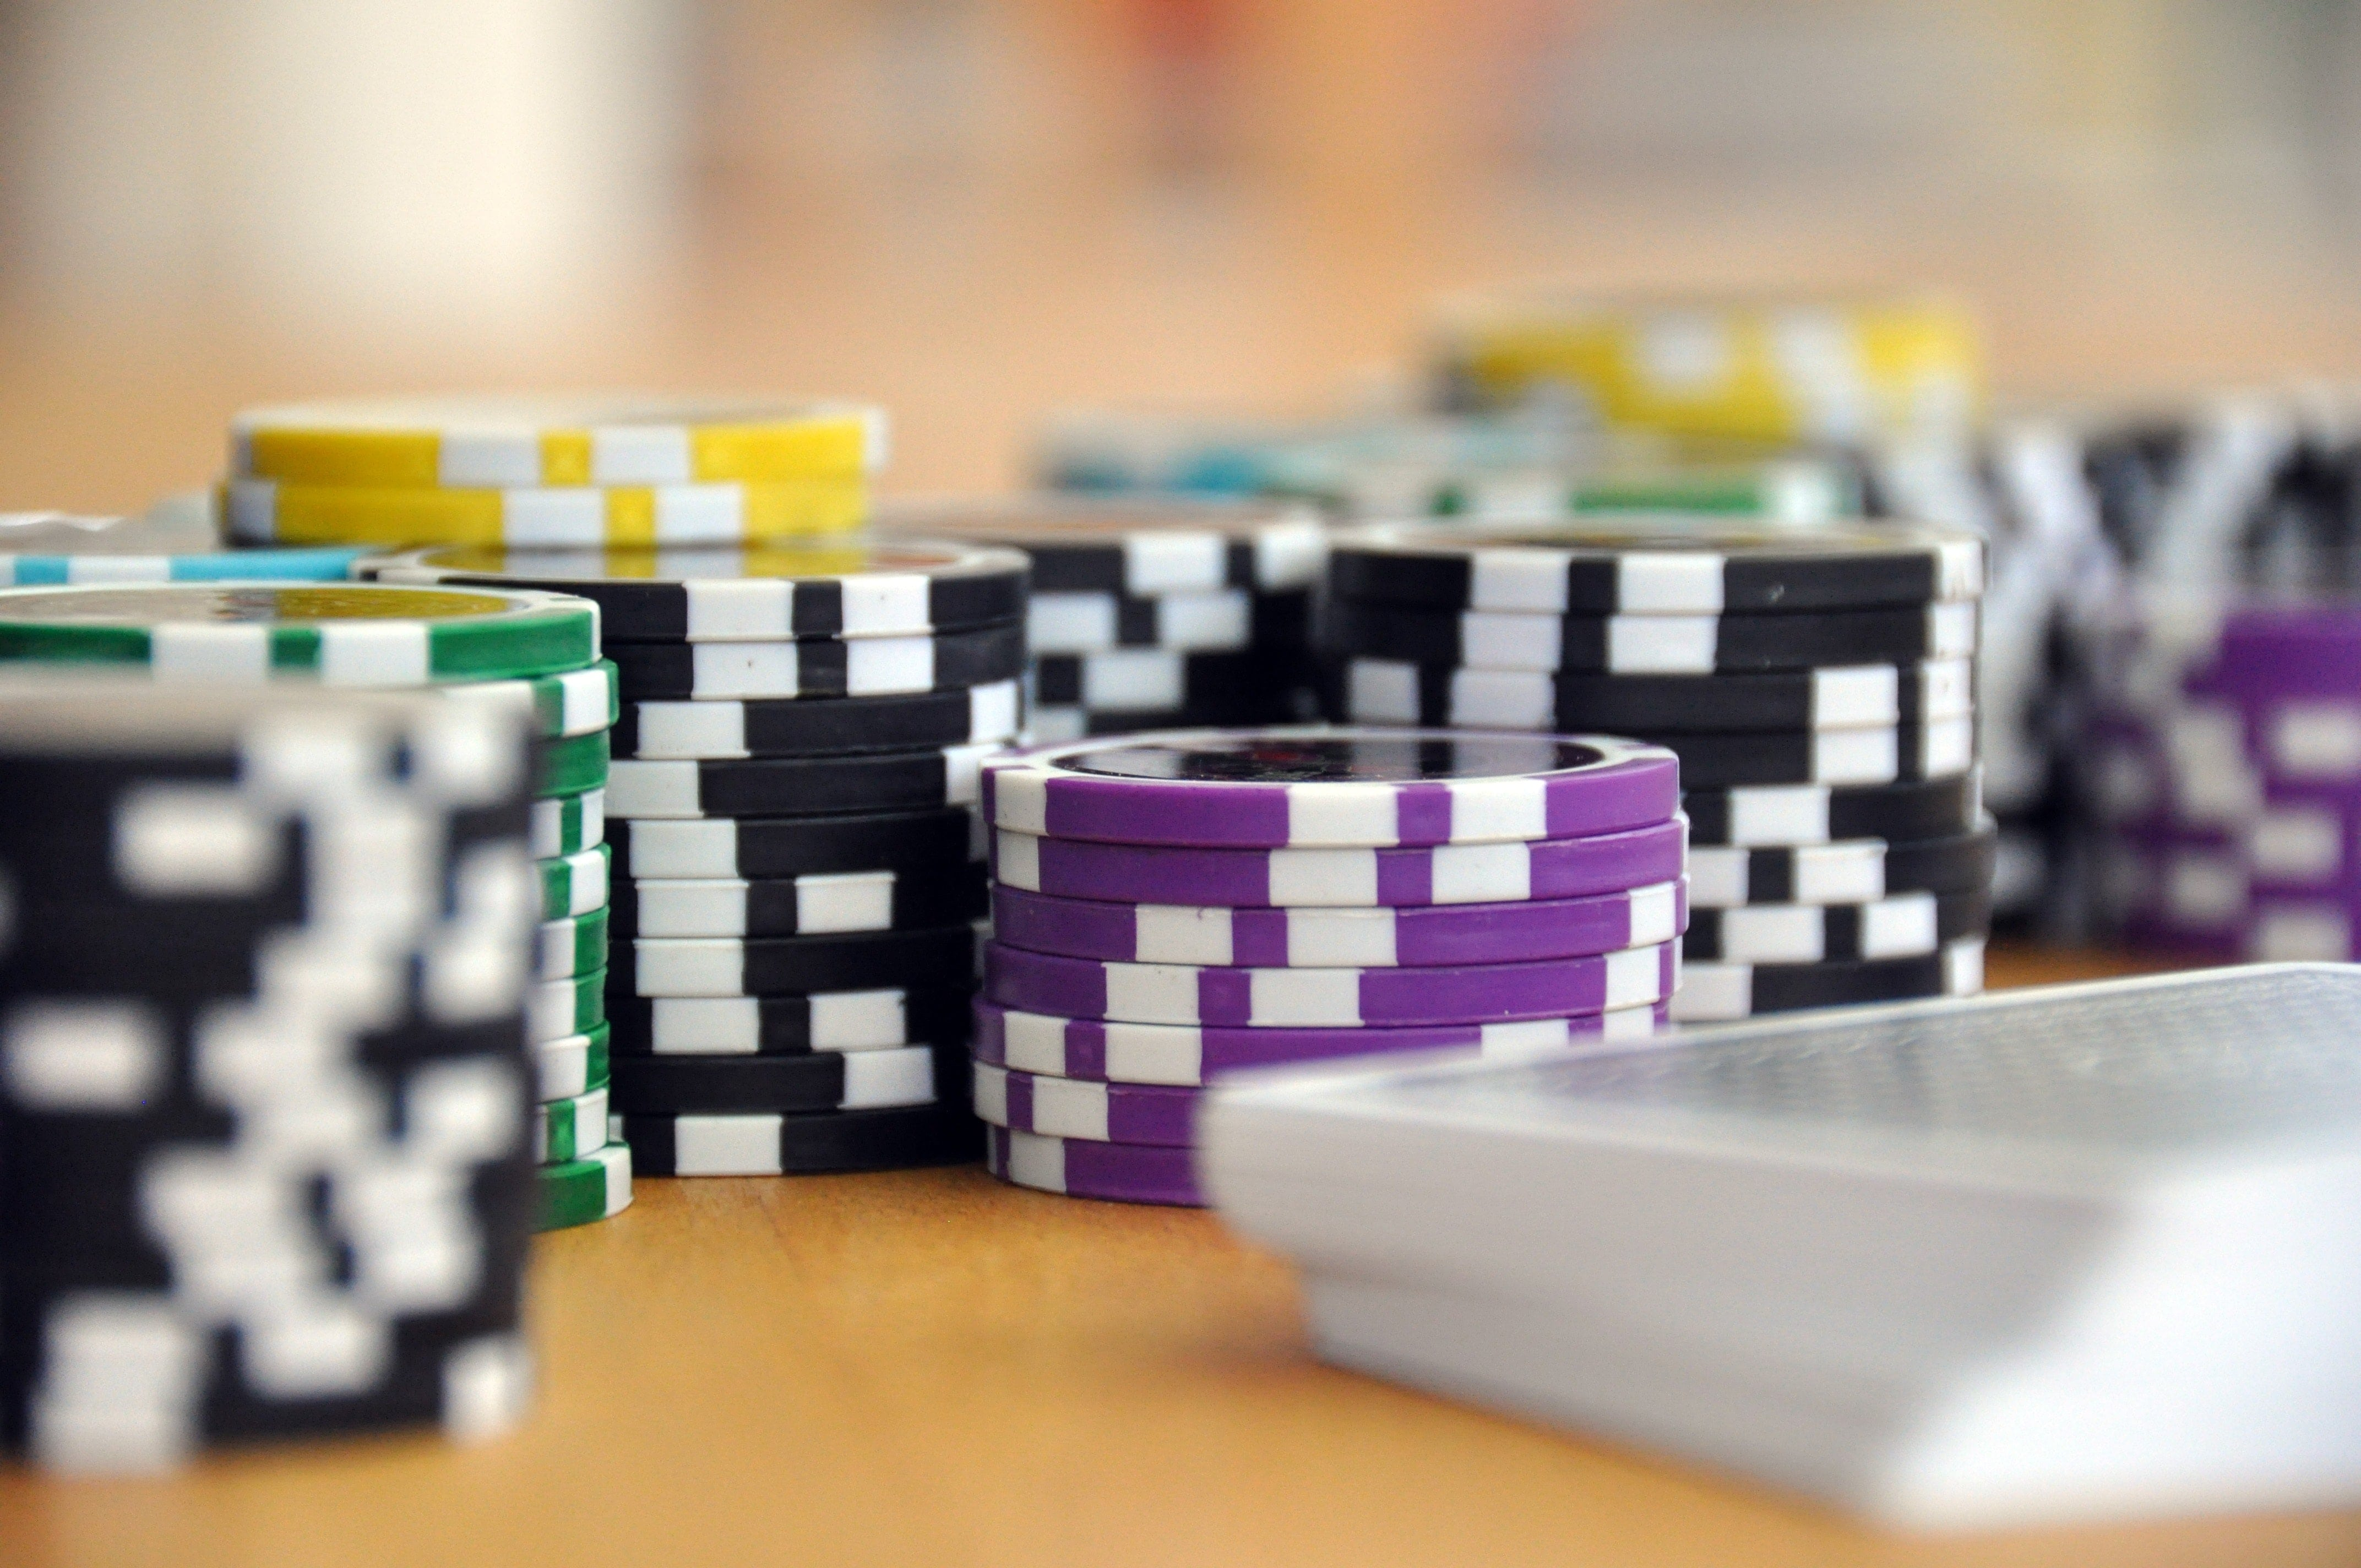 Casino Chips And Pack Of Cards On Table